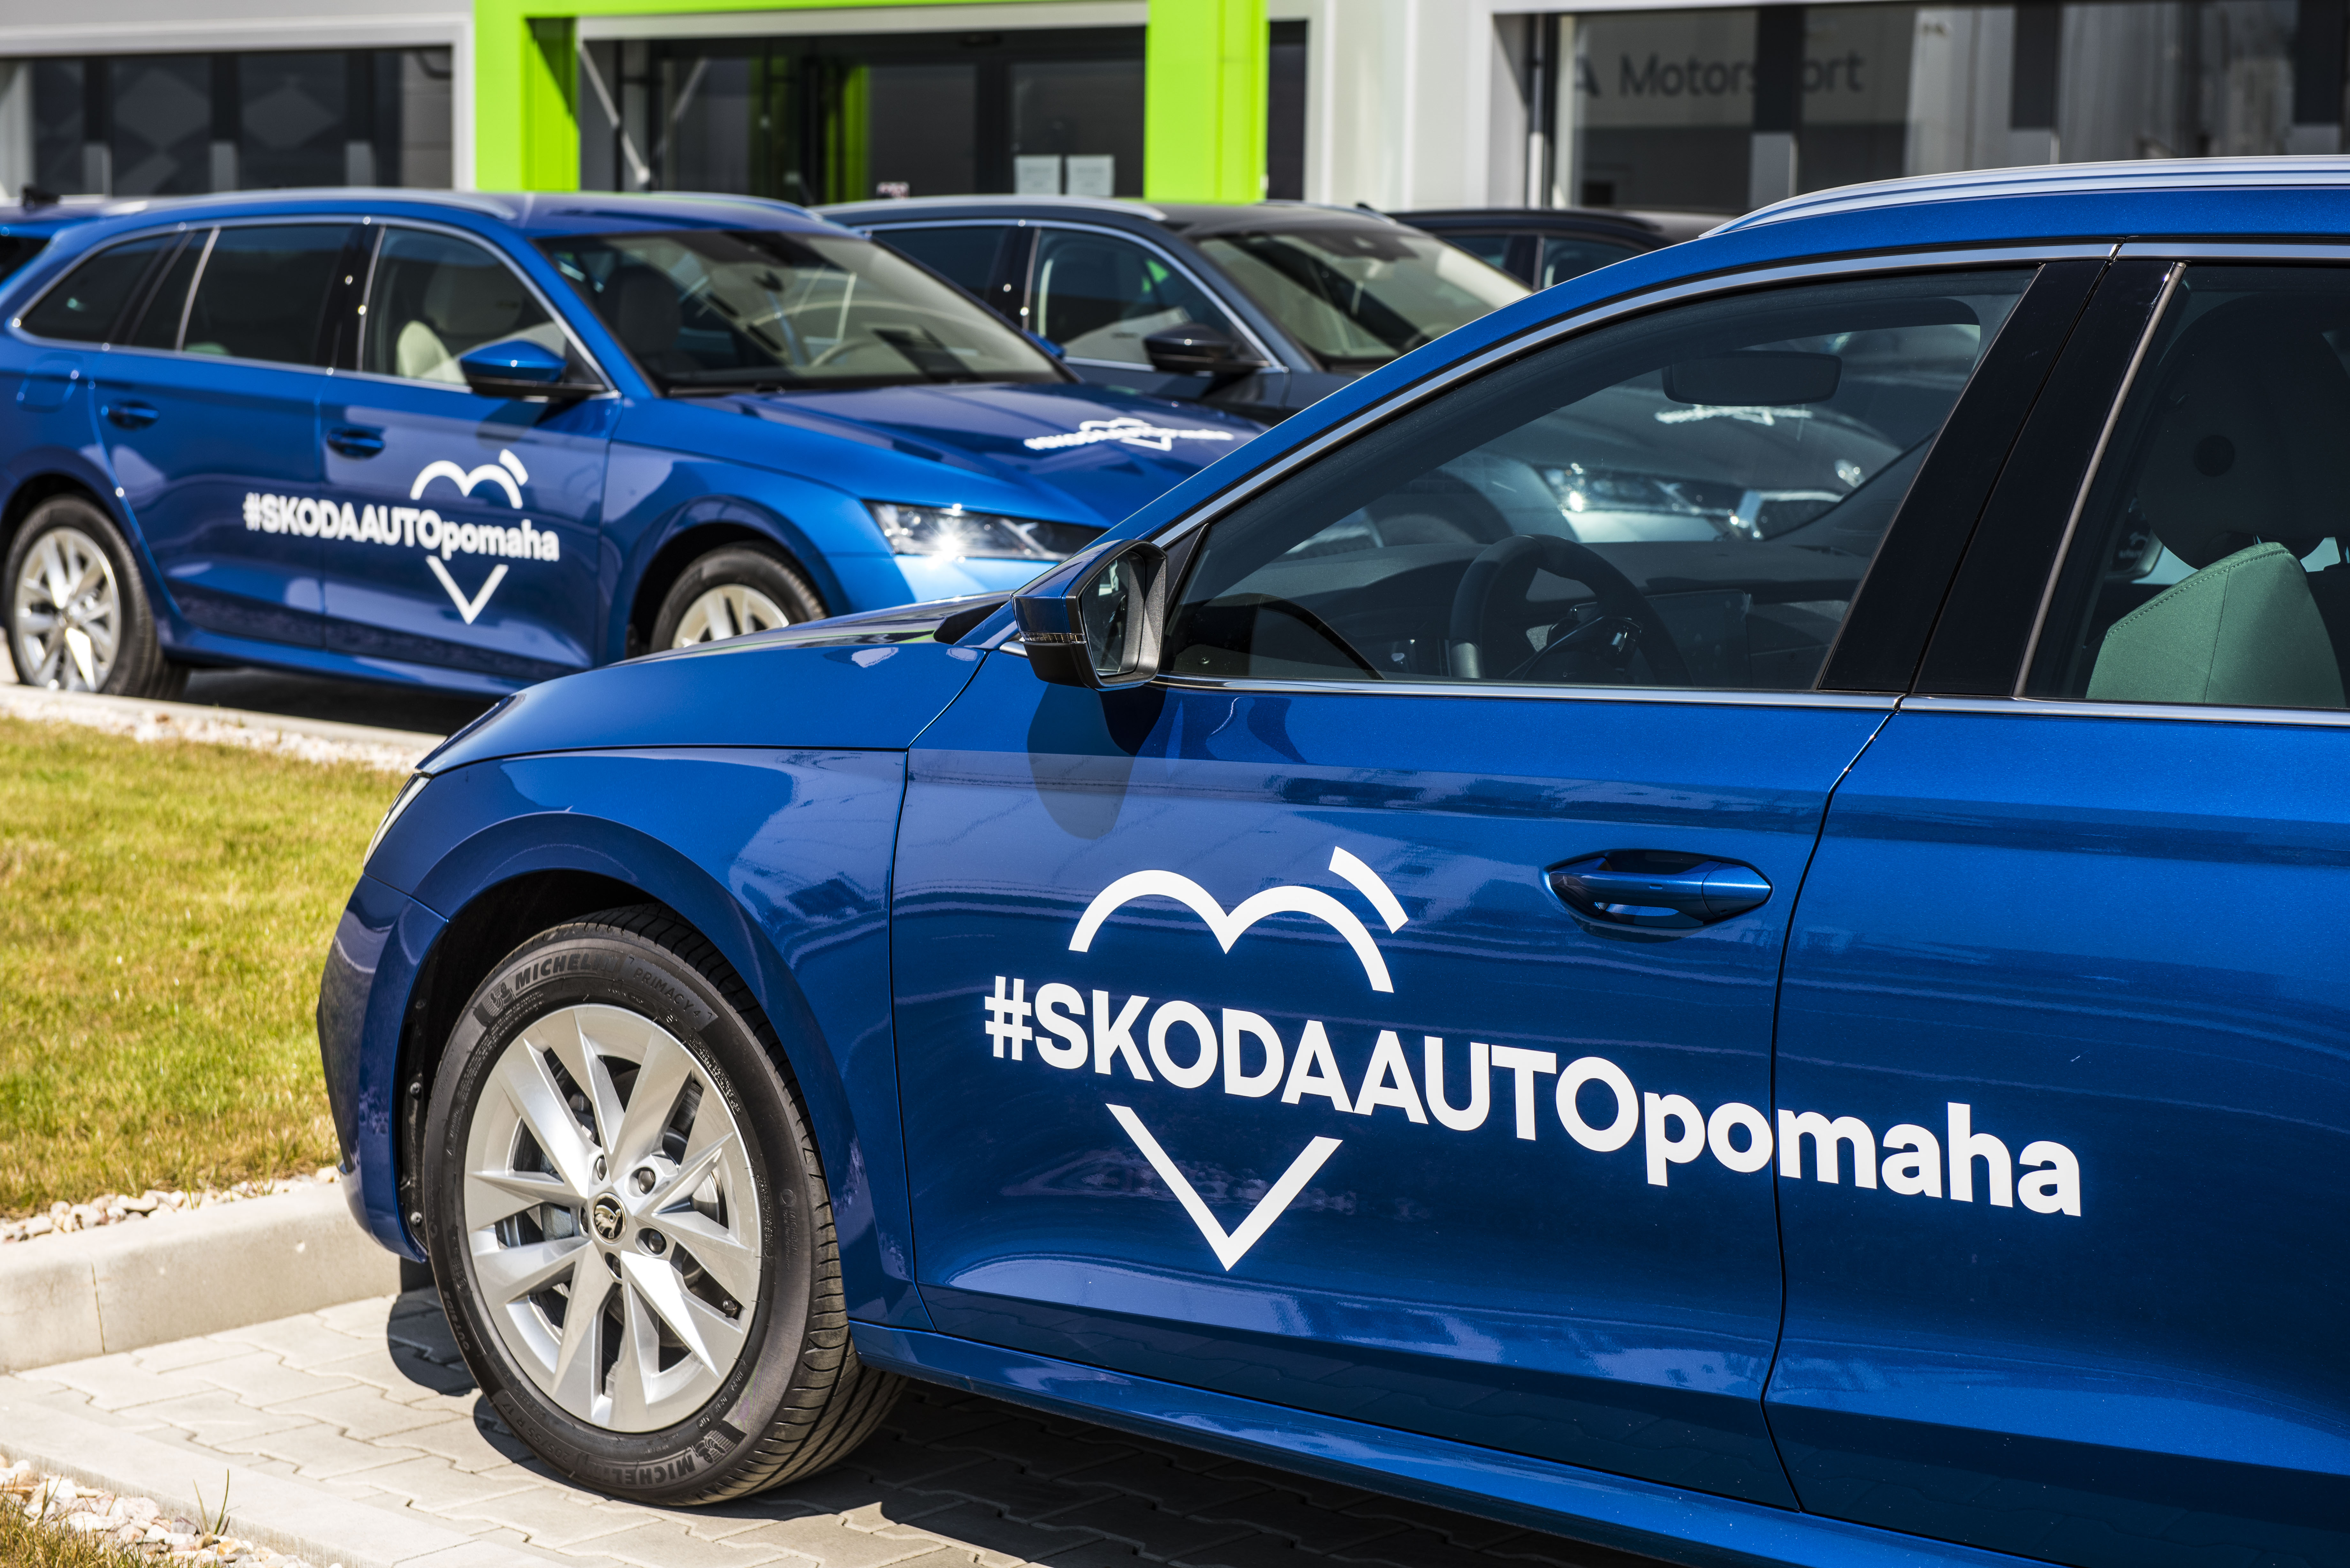 SKODA AUTO's support in fighting COVID-19 met with high demand - Image 1